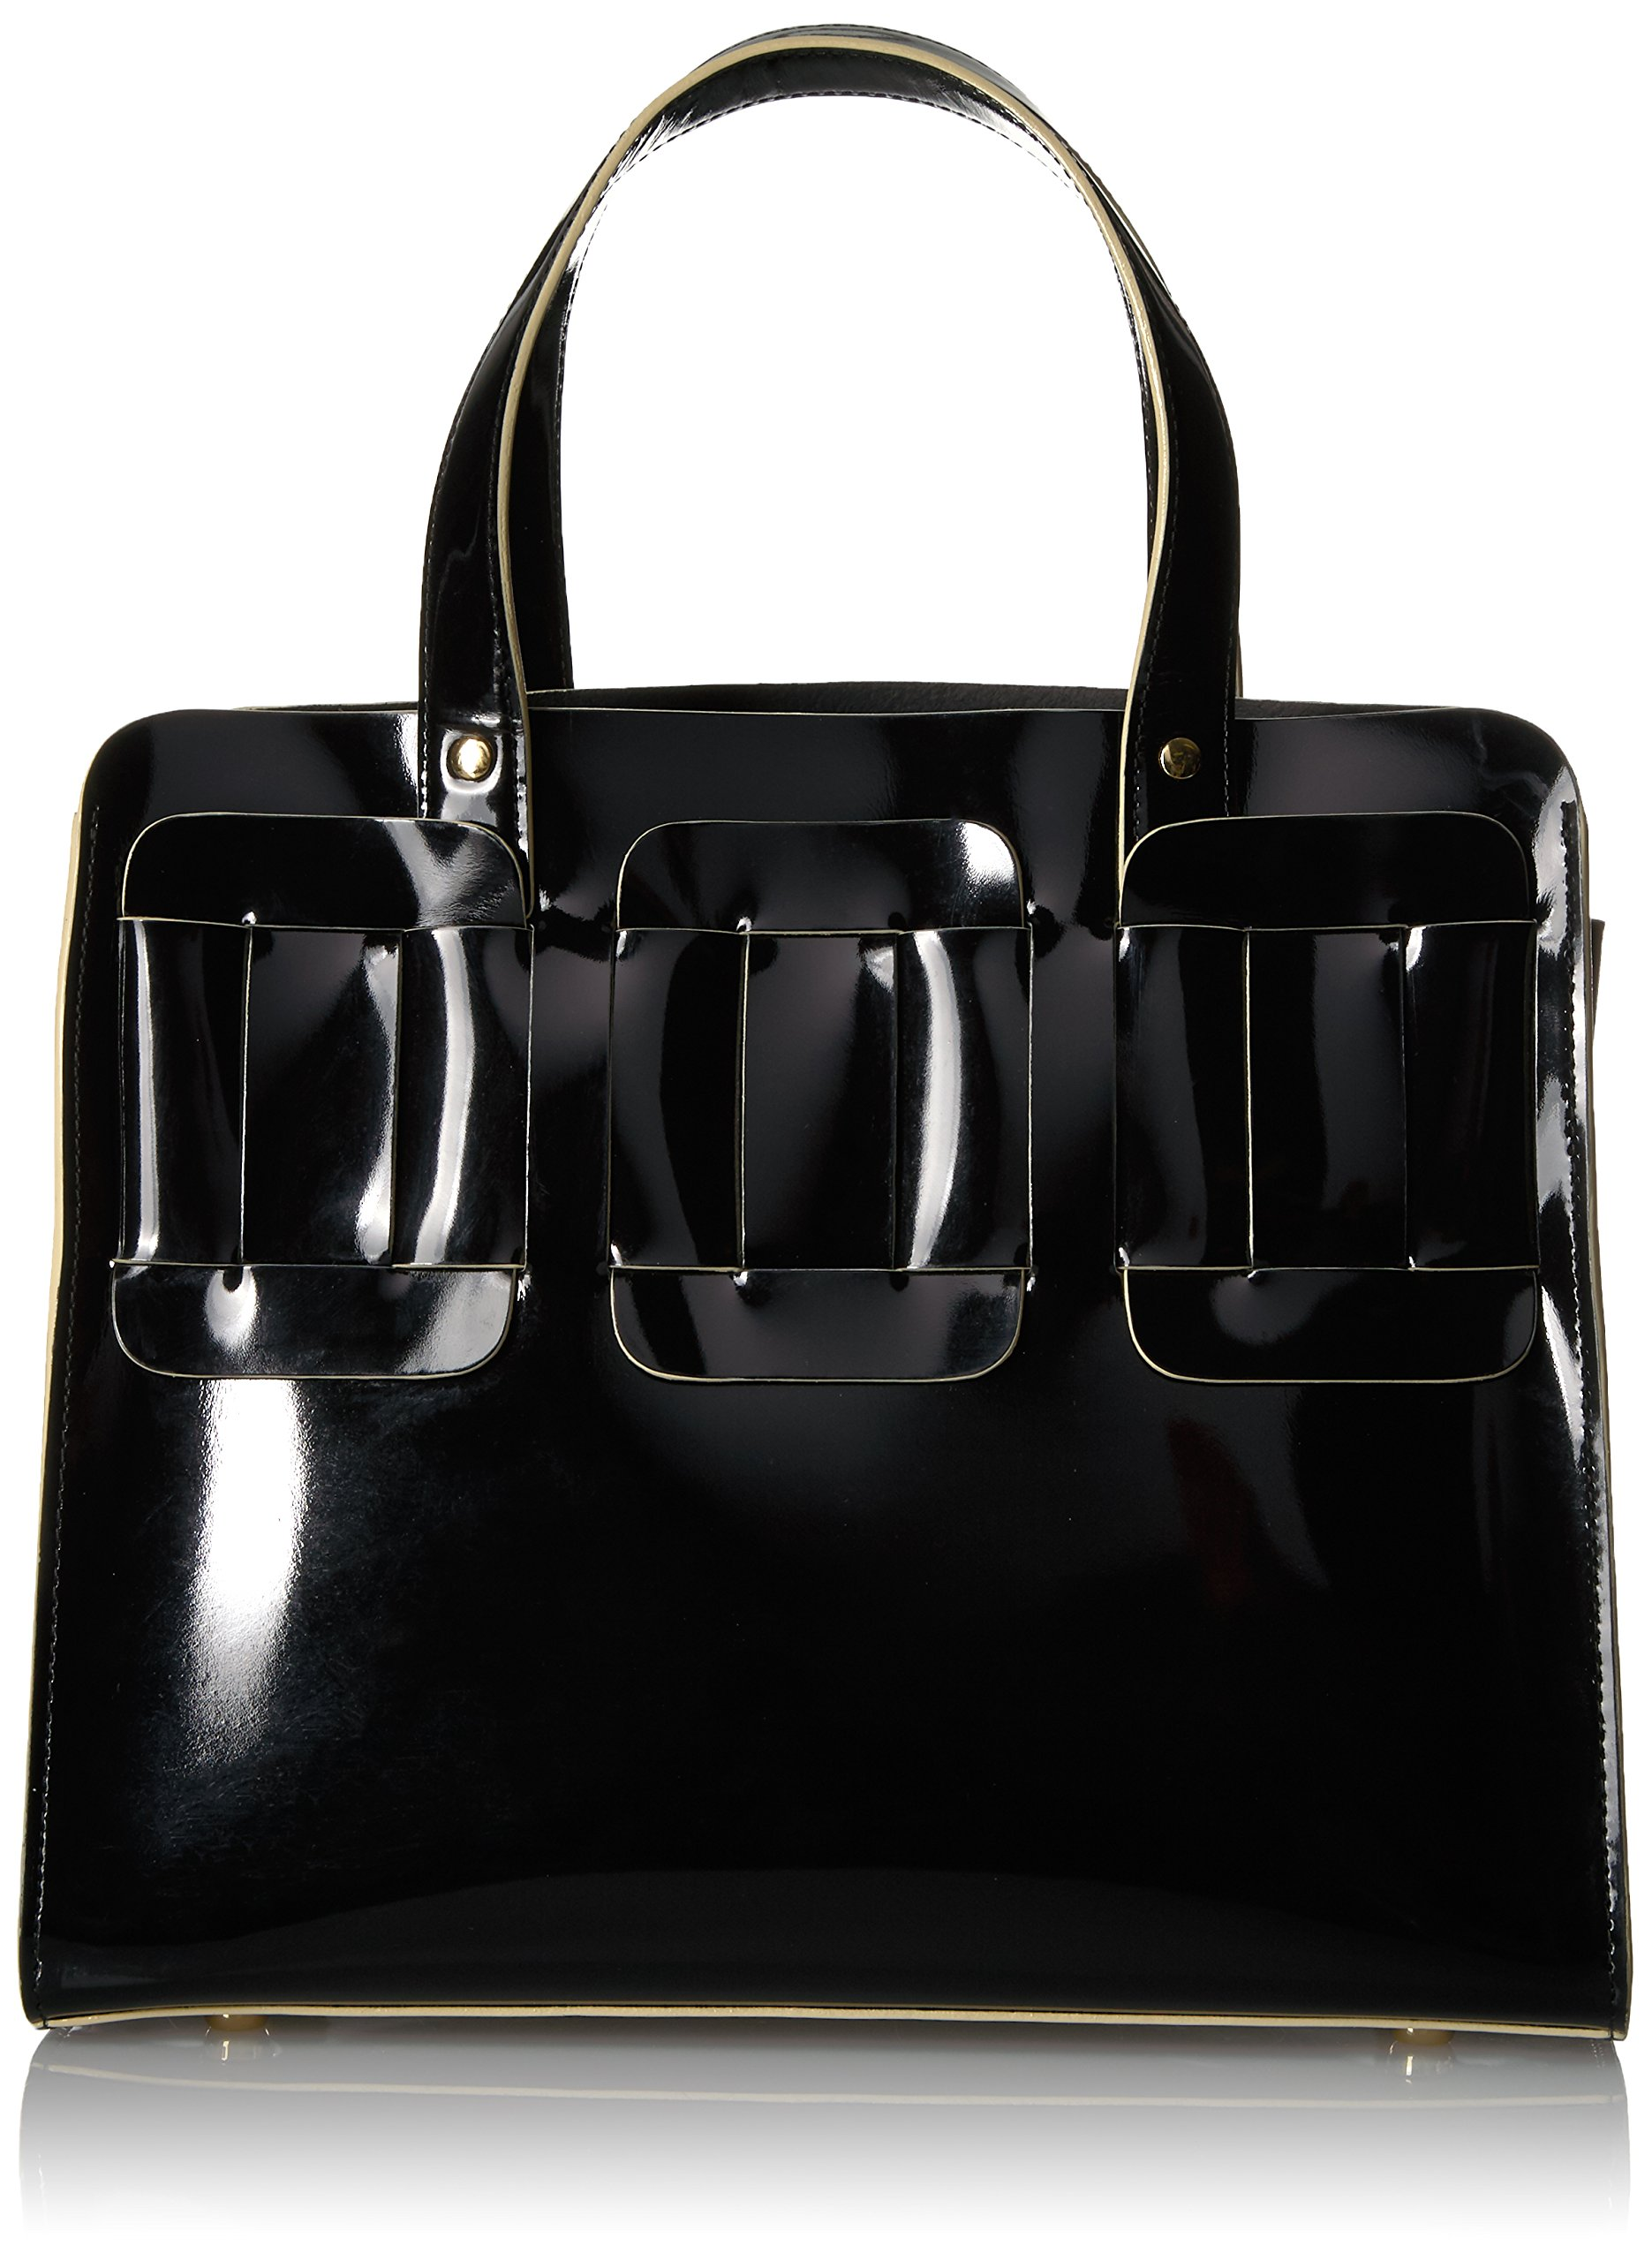 Orla Kiely Glass Leather Linked Margot, Black by Orla Kiely